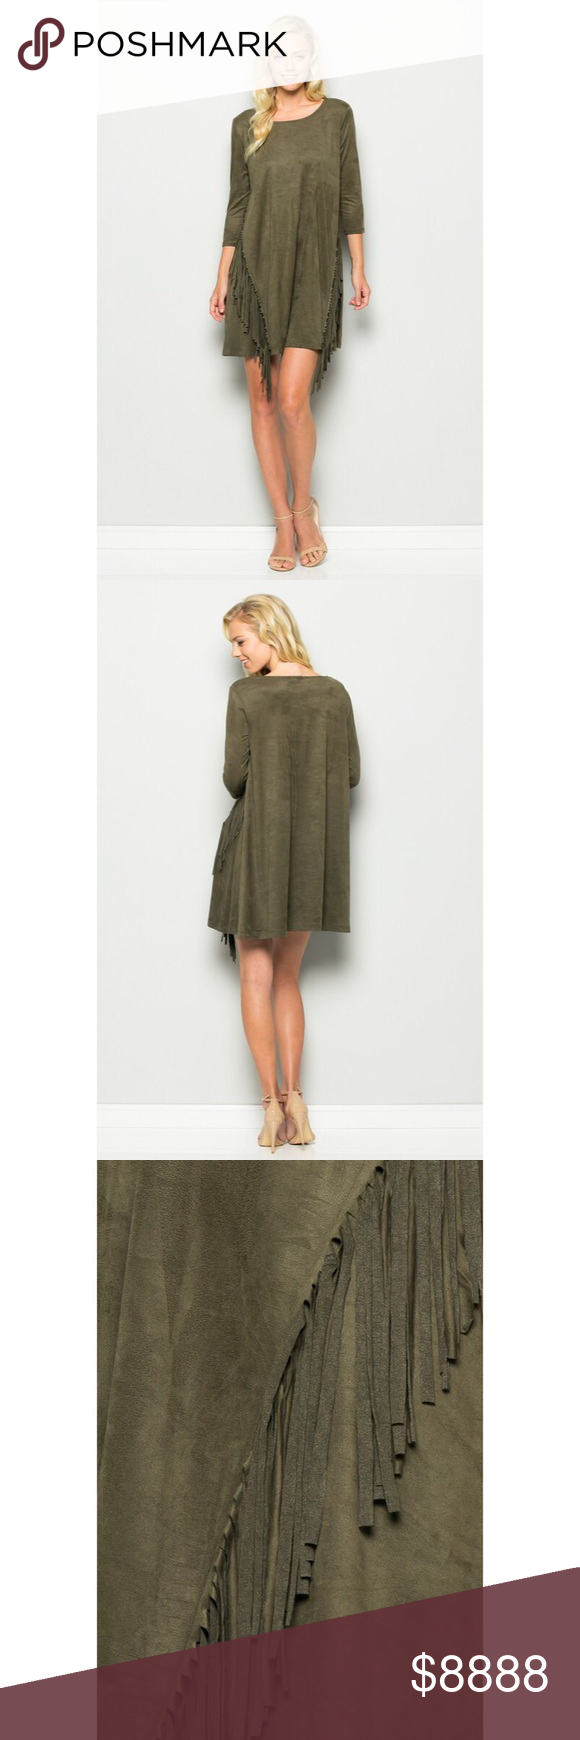 Faux Suede Olive Fringe Dress This beautiful dress should be in your closet for …